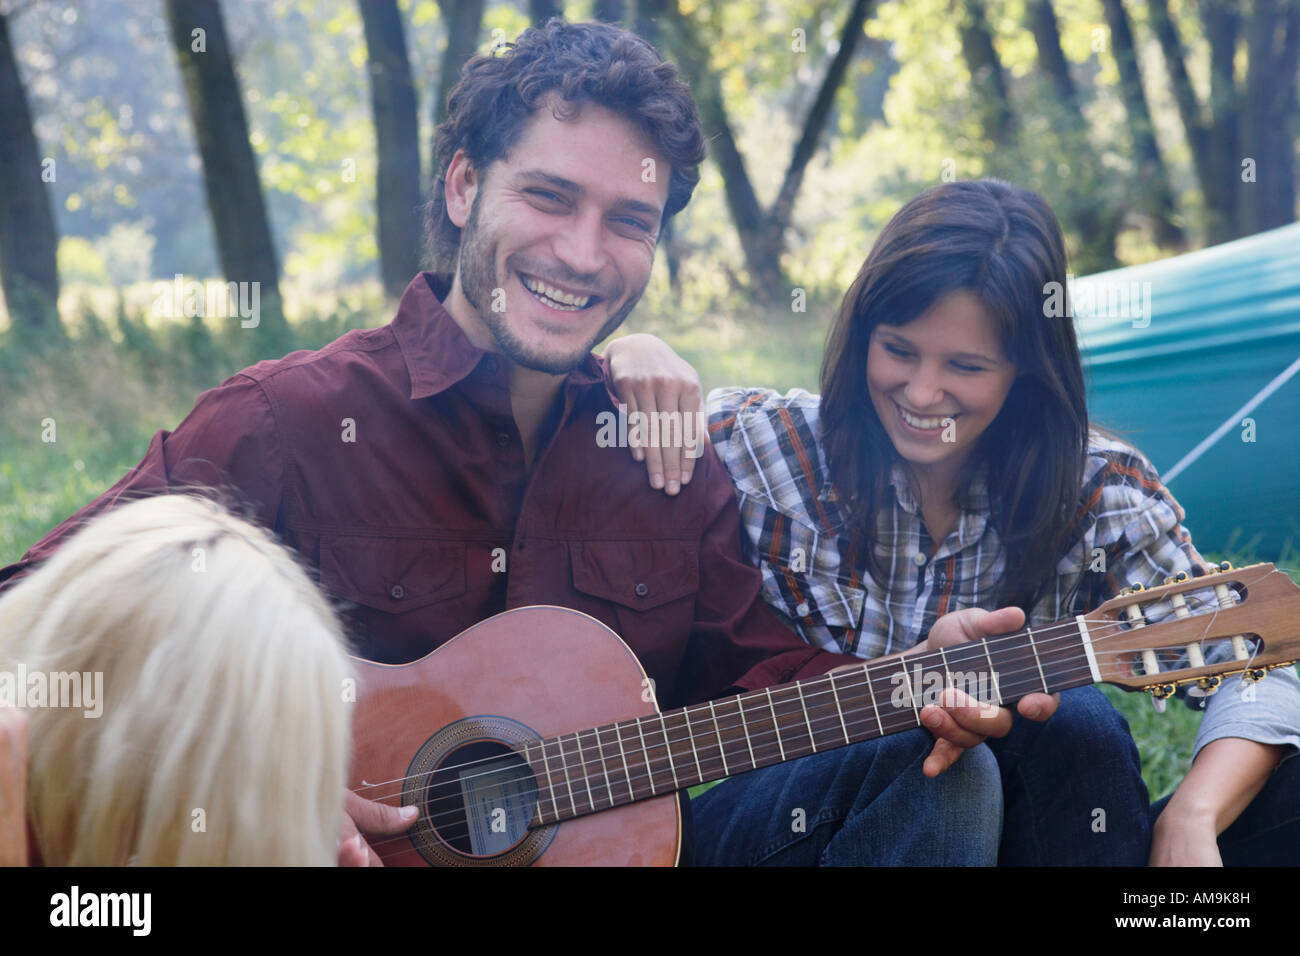 Man at campsite playing guitar with two woman listening and smiling. - Stock Image